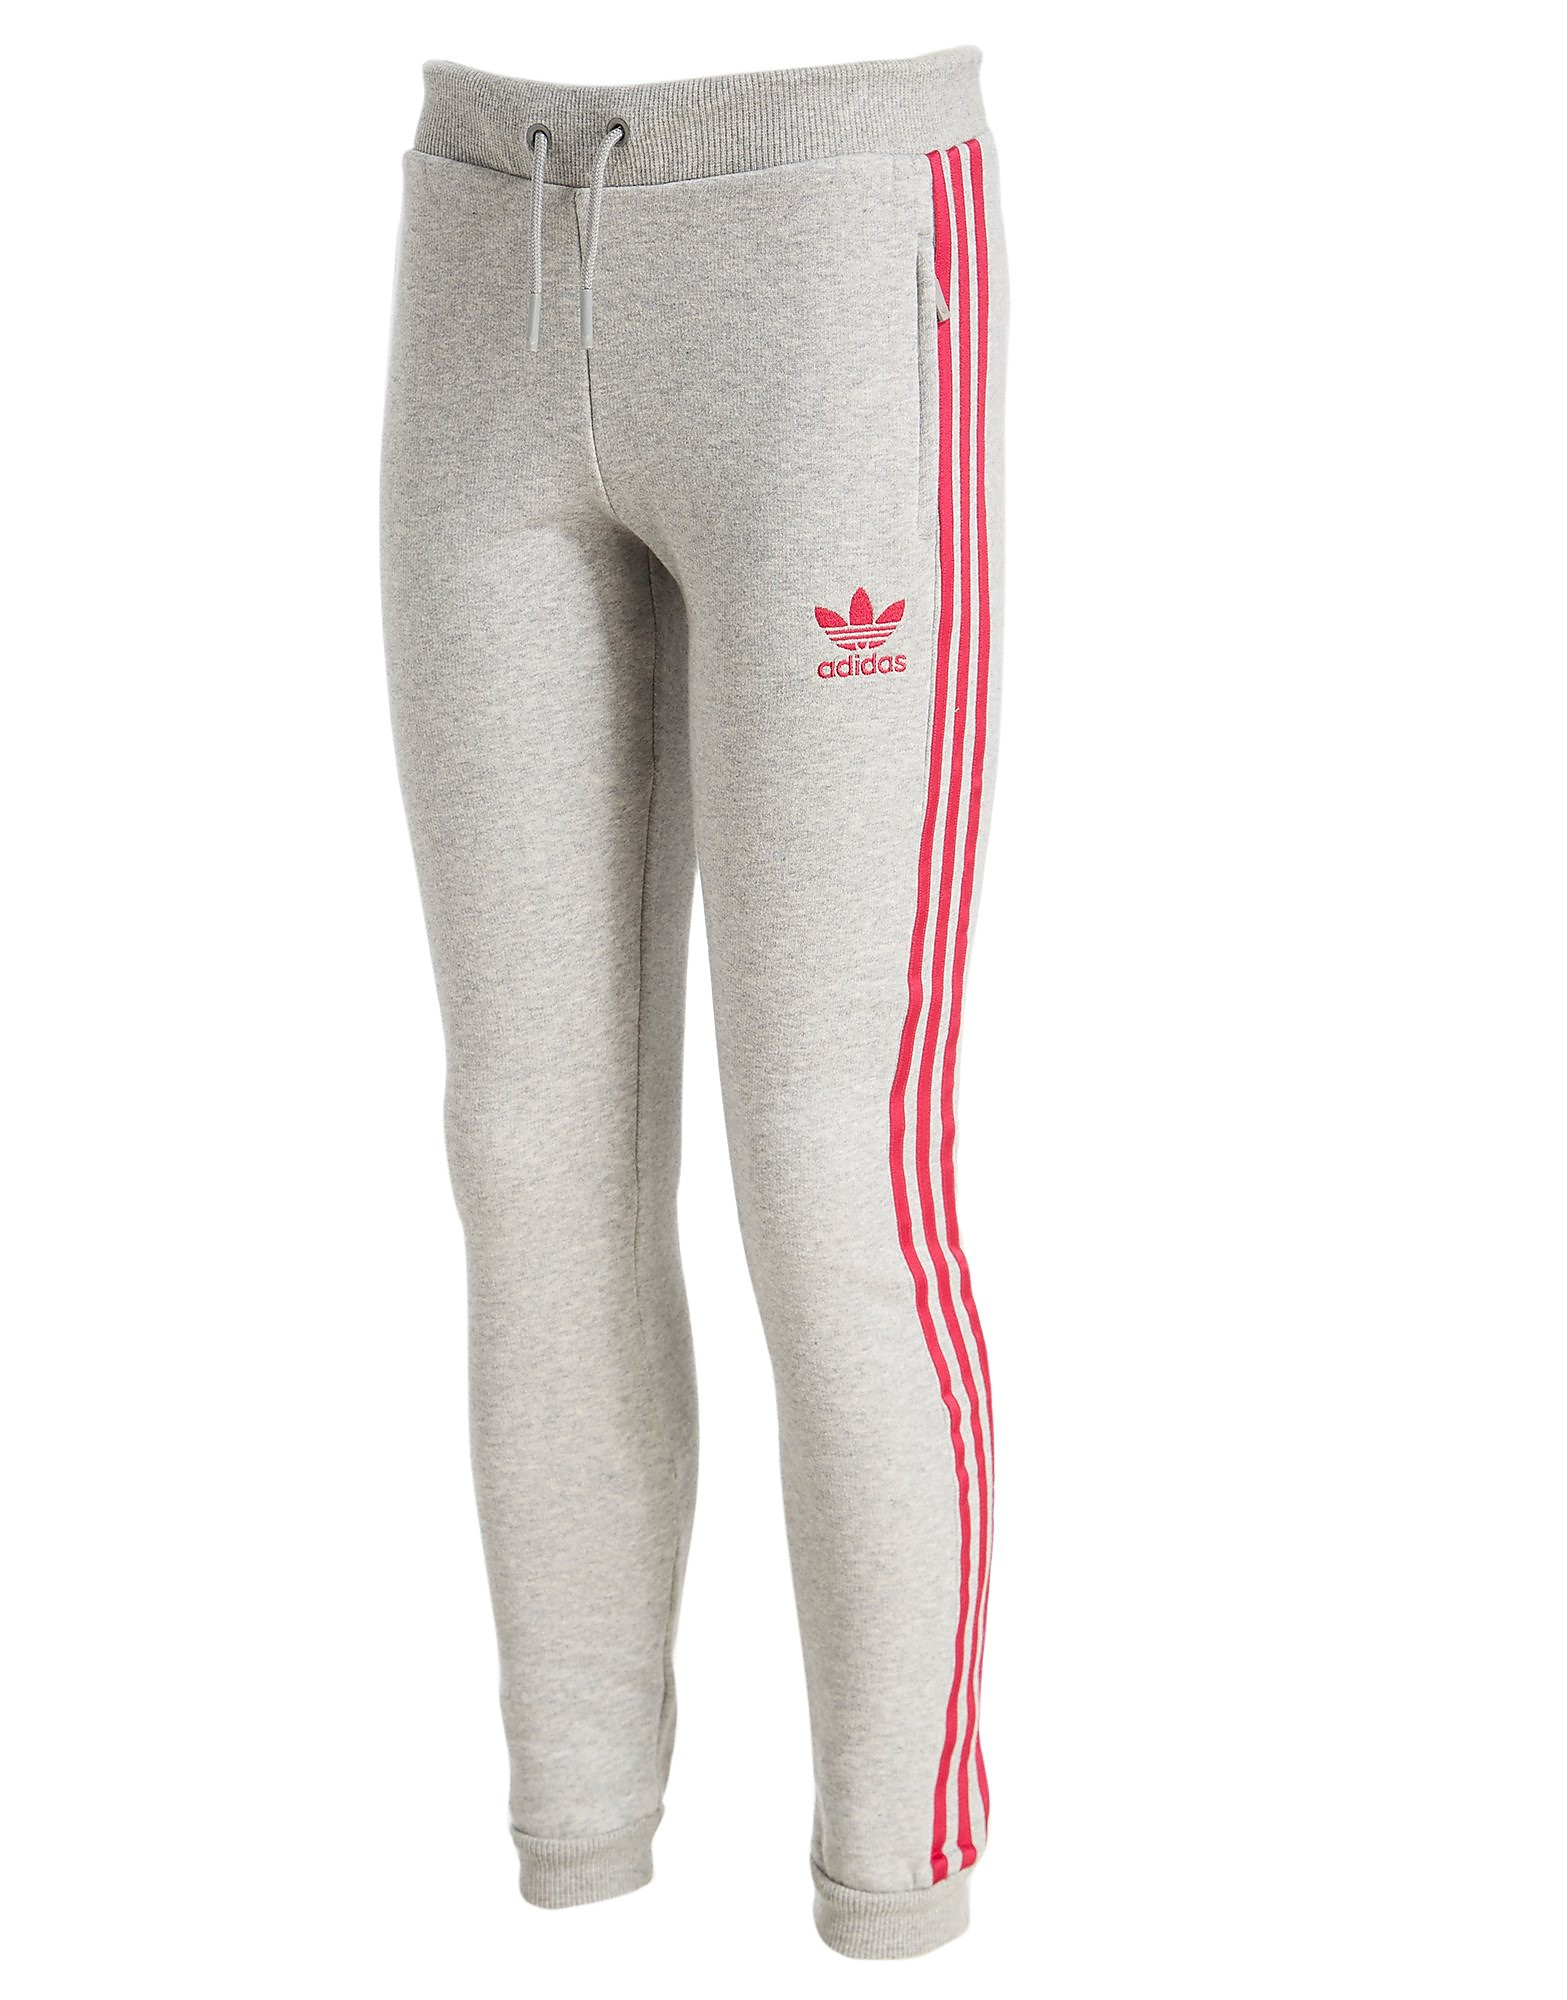 adidas Originals Pantalon Slim pour fille